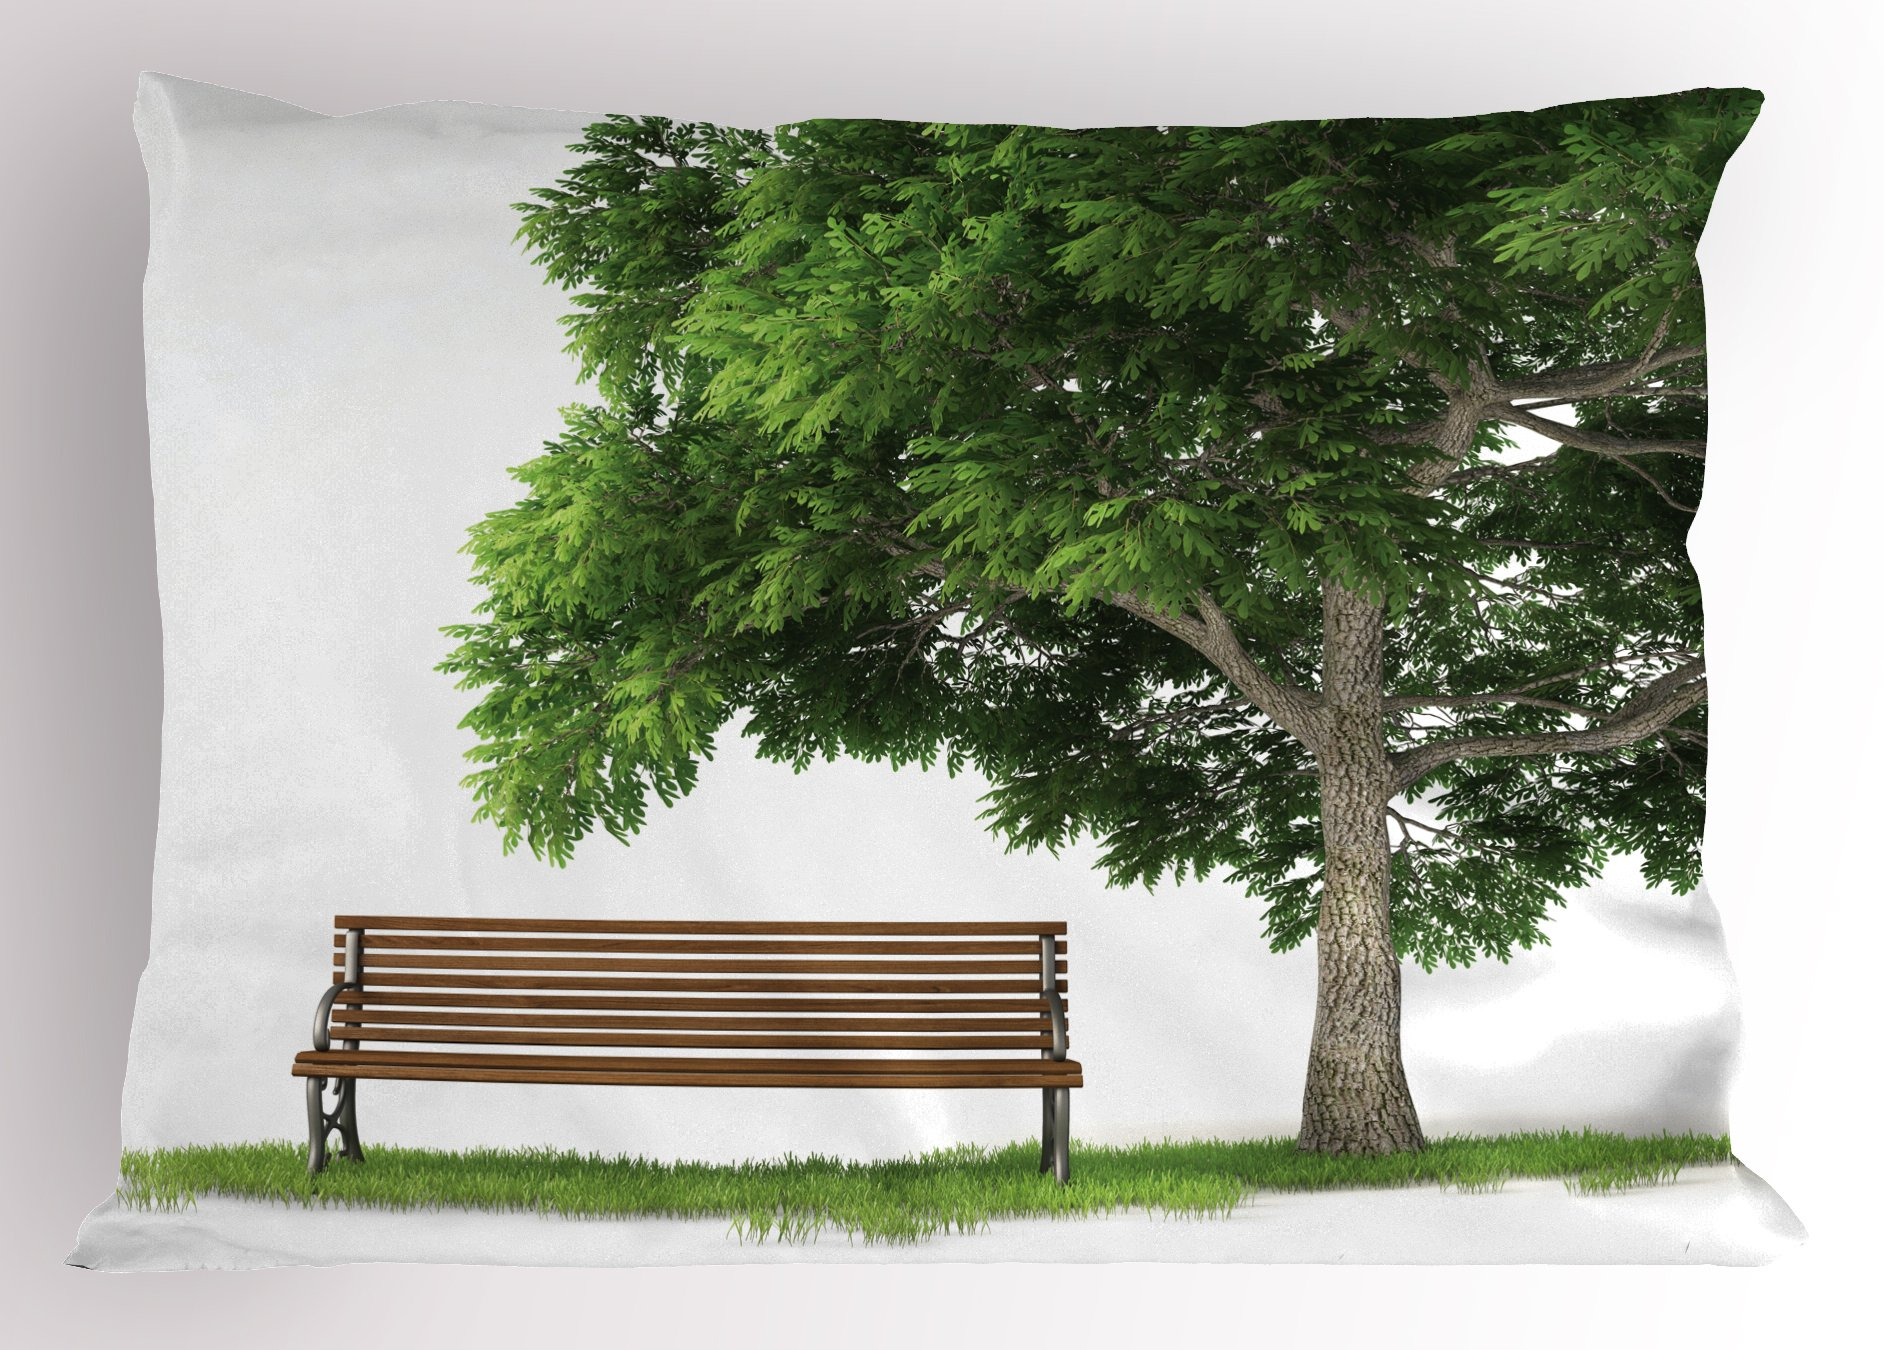 Lunarable Tree Pillow Sham, Beach Under Oak Tree Outdoor Objects Habitat Grass Foliage Wood Environment Concept, Decorative Standard Queen Size Printed Pillowcase, 30 X 20 inches, Green Brown by Lunarable (Image #1)